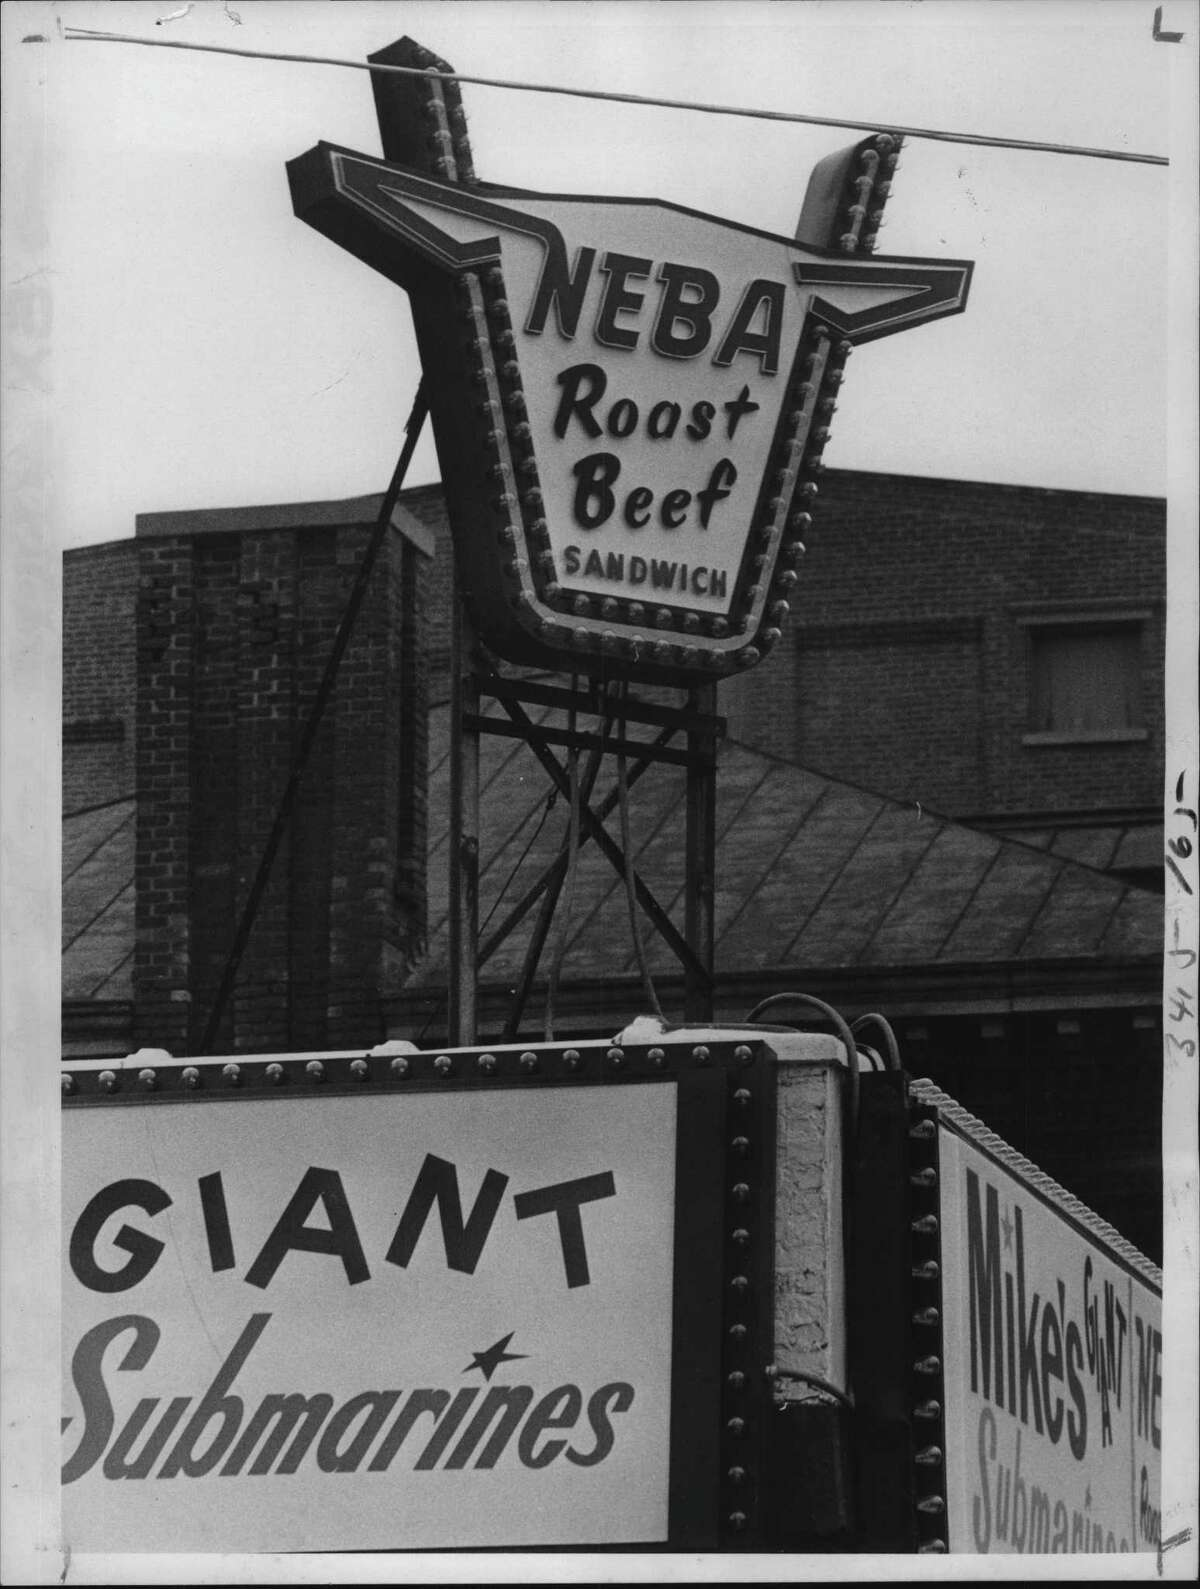 Neba Root Beer sign at Mike's Submarines, Madison & Lark Streets, Albany, New York. November 15, 1978 (Times Union Archive)